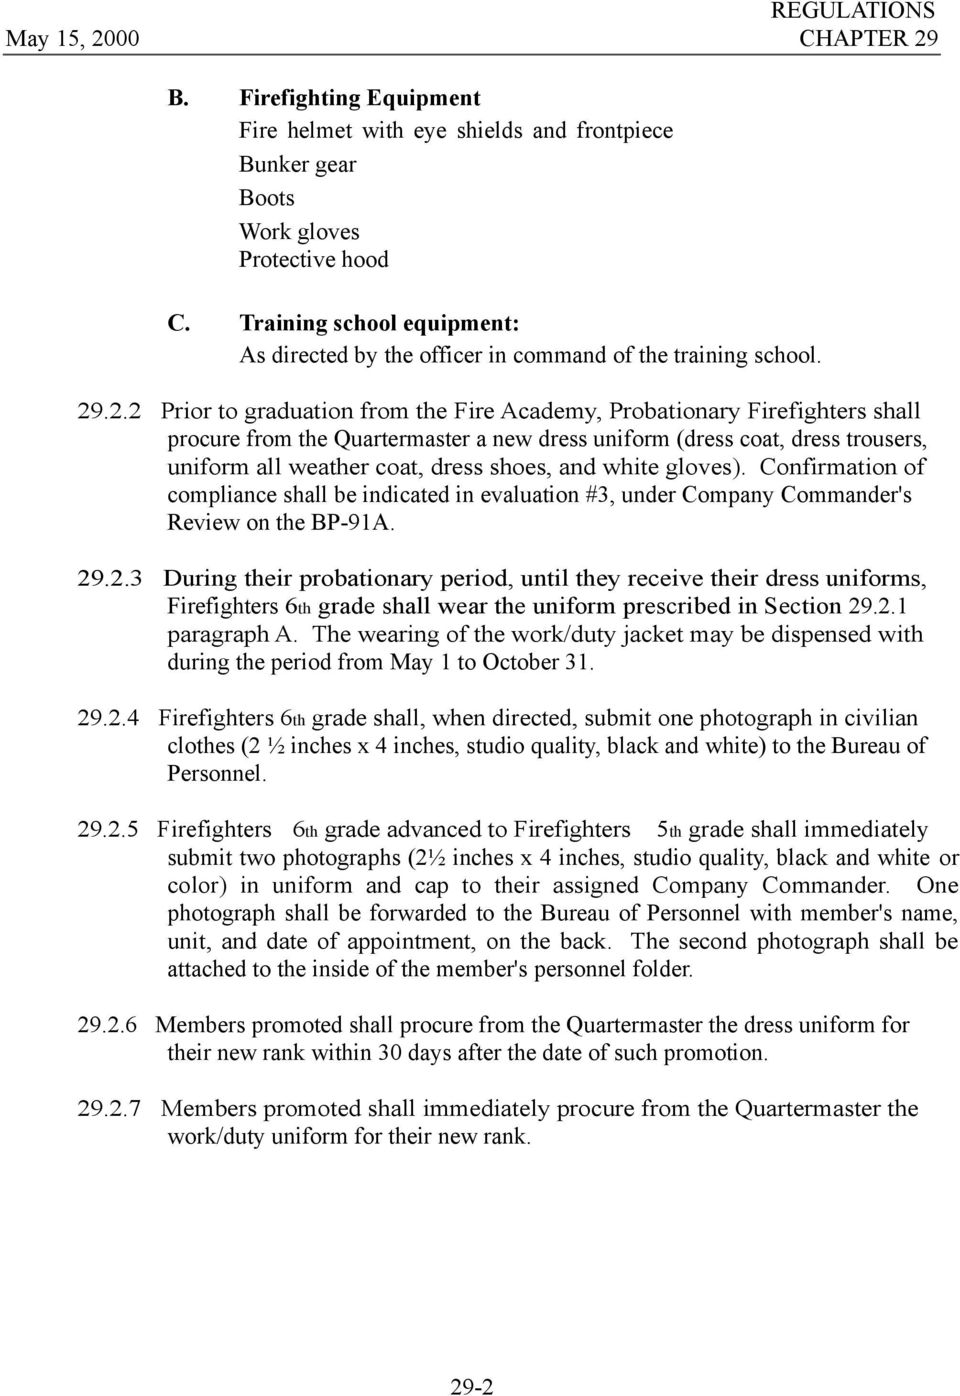 .2.2 Prior to graduation from the Fire Academy, Probationary Firefighters shall procure from the Quartermaster a new dress uniform (dress coat, dress trousers, uniform all weather coat, dress shoes,